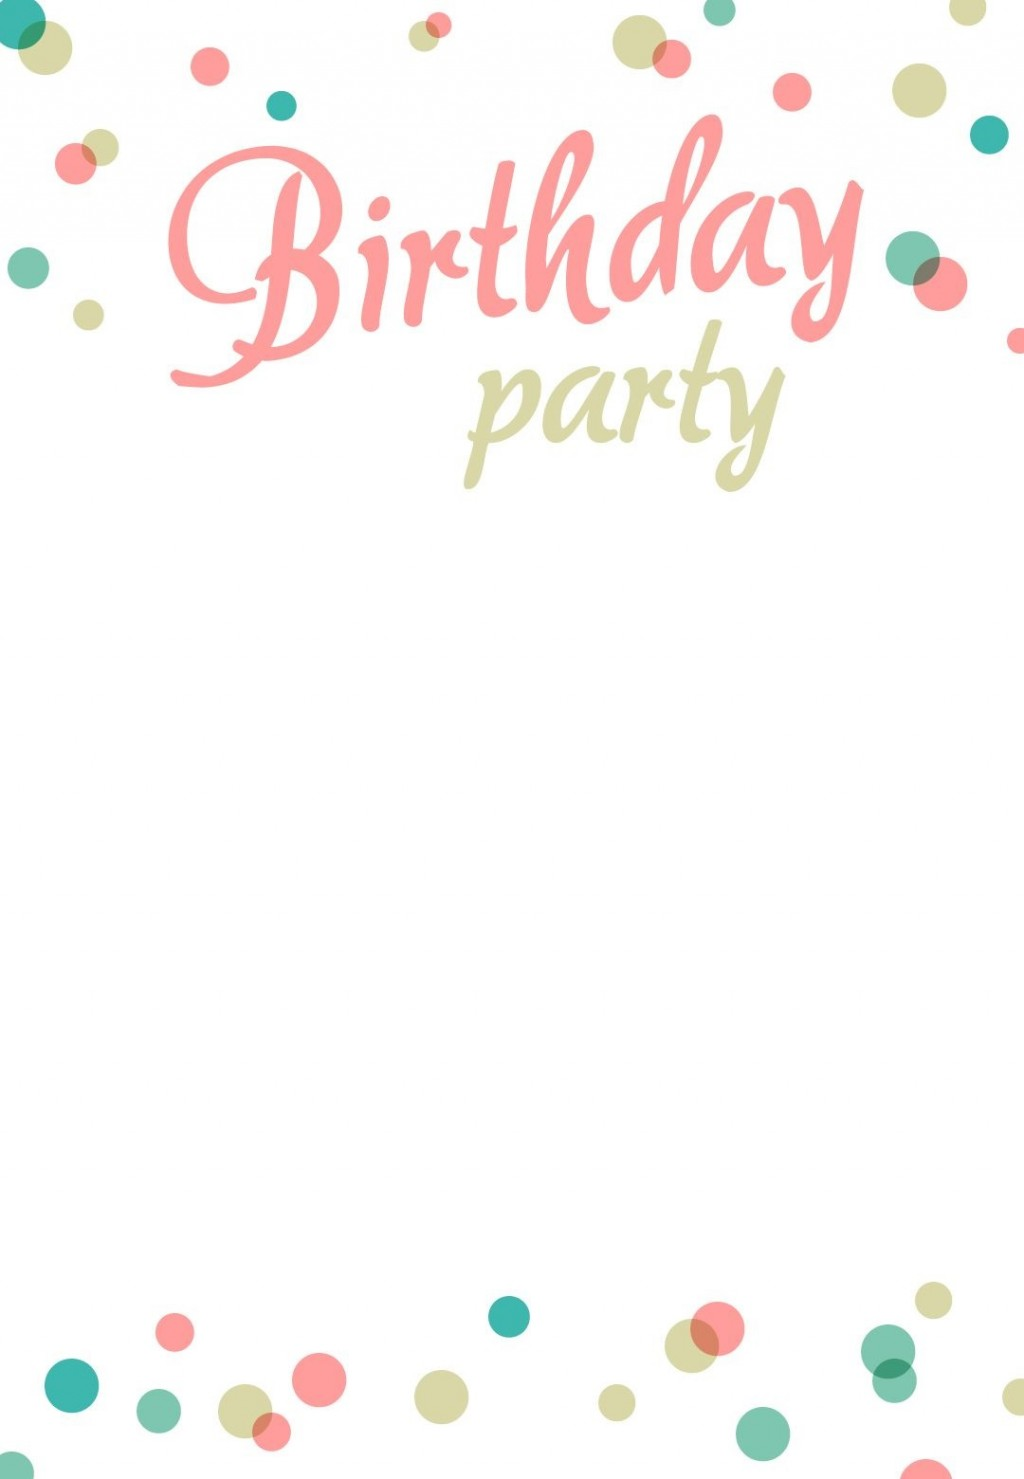 007 Wonderful Birthday Party Invitation Template Picture  Templates Google Doc 80th Free Download OnlineLarge